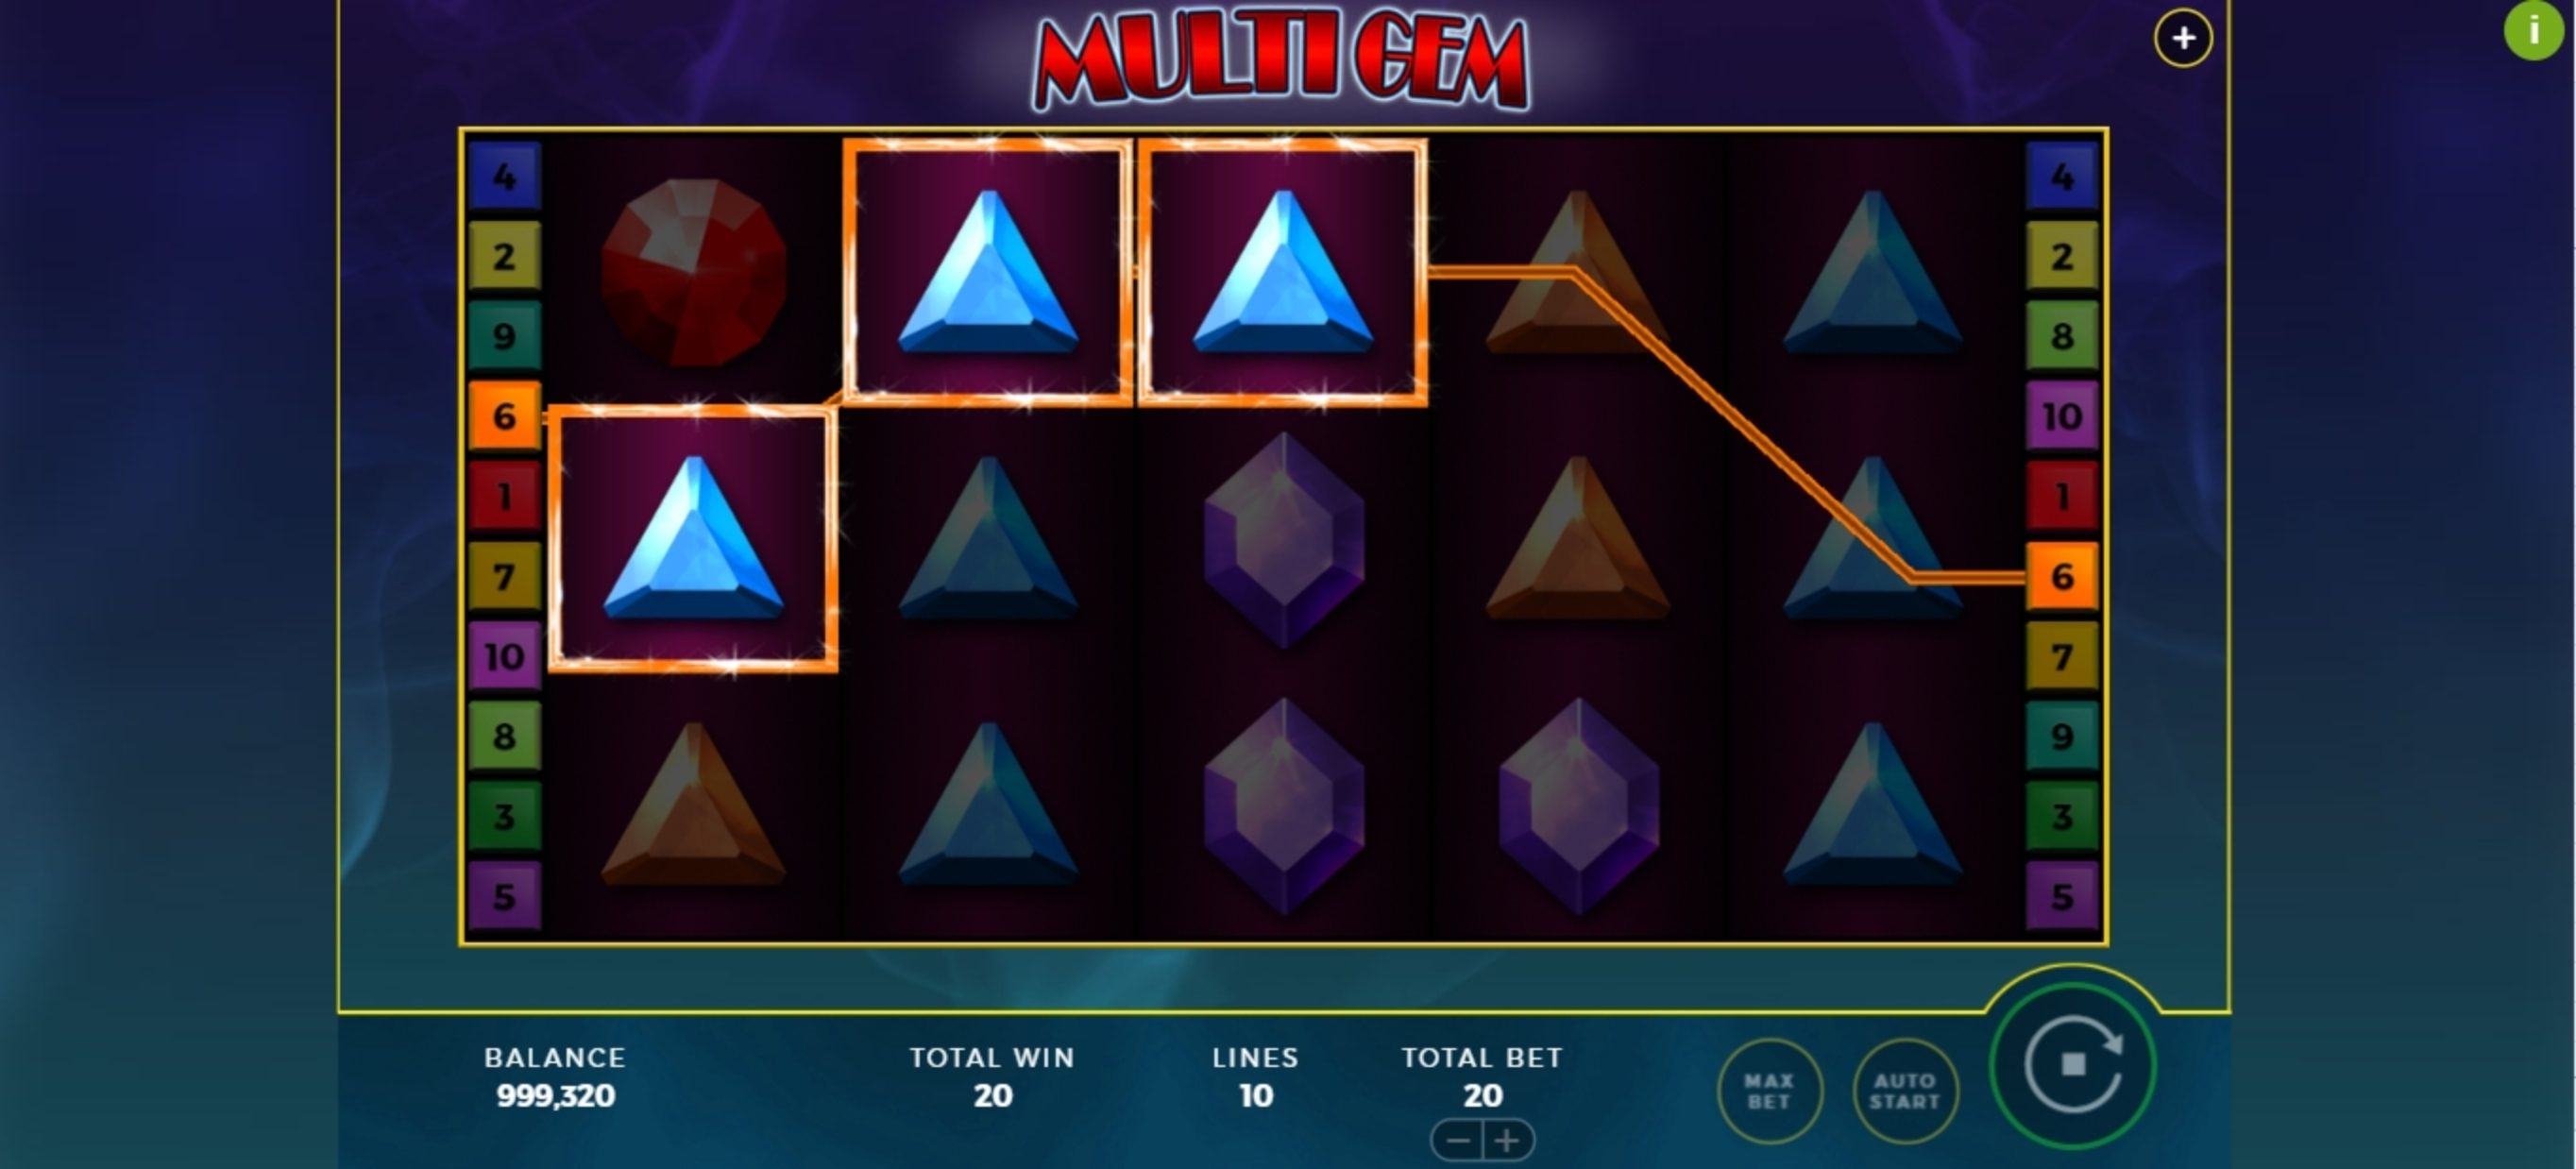 Win Money in Multi Gem Free Slot Game by Bally Wulff